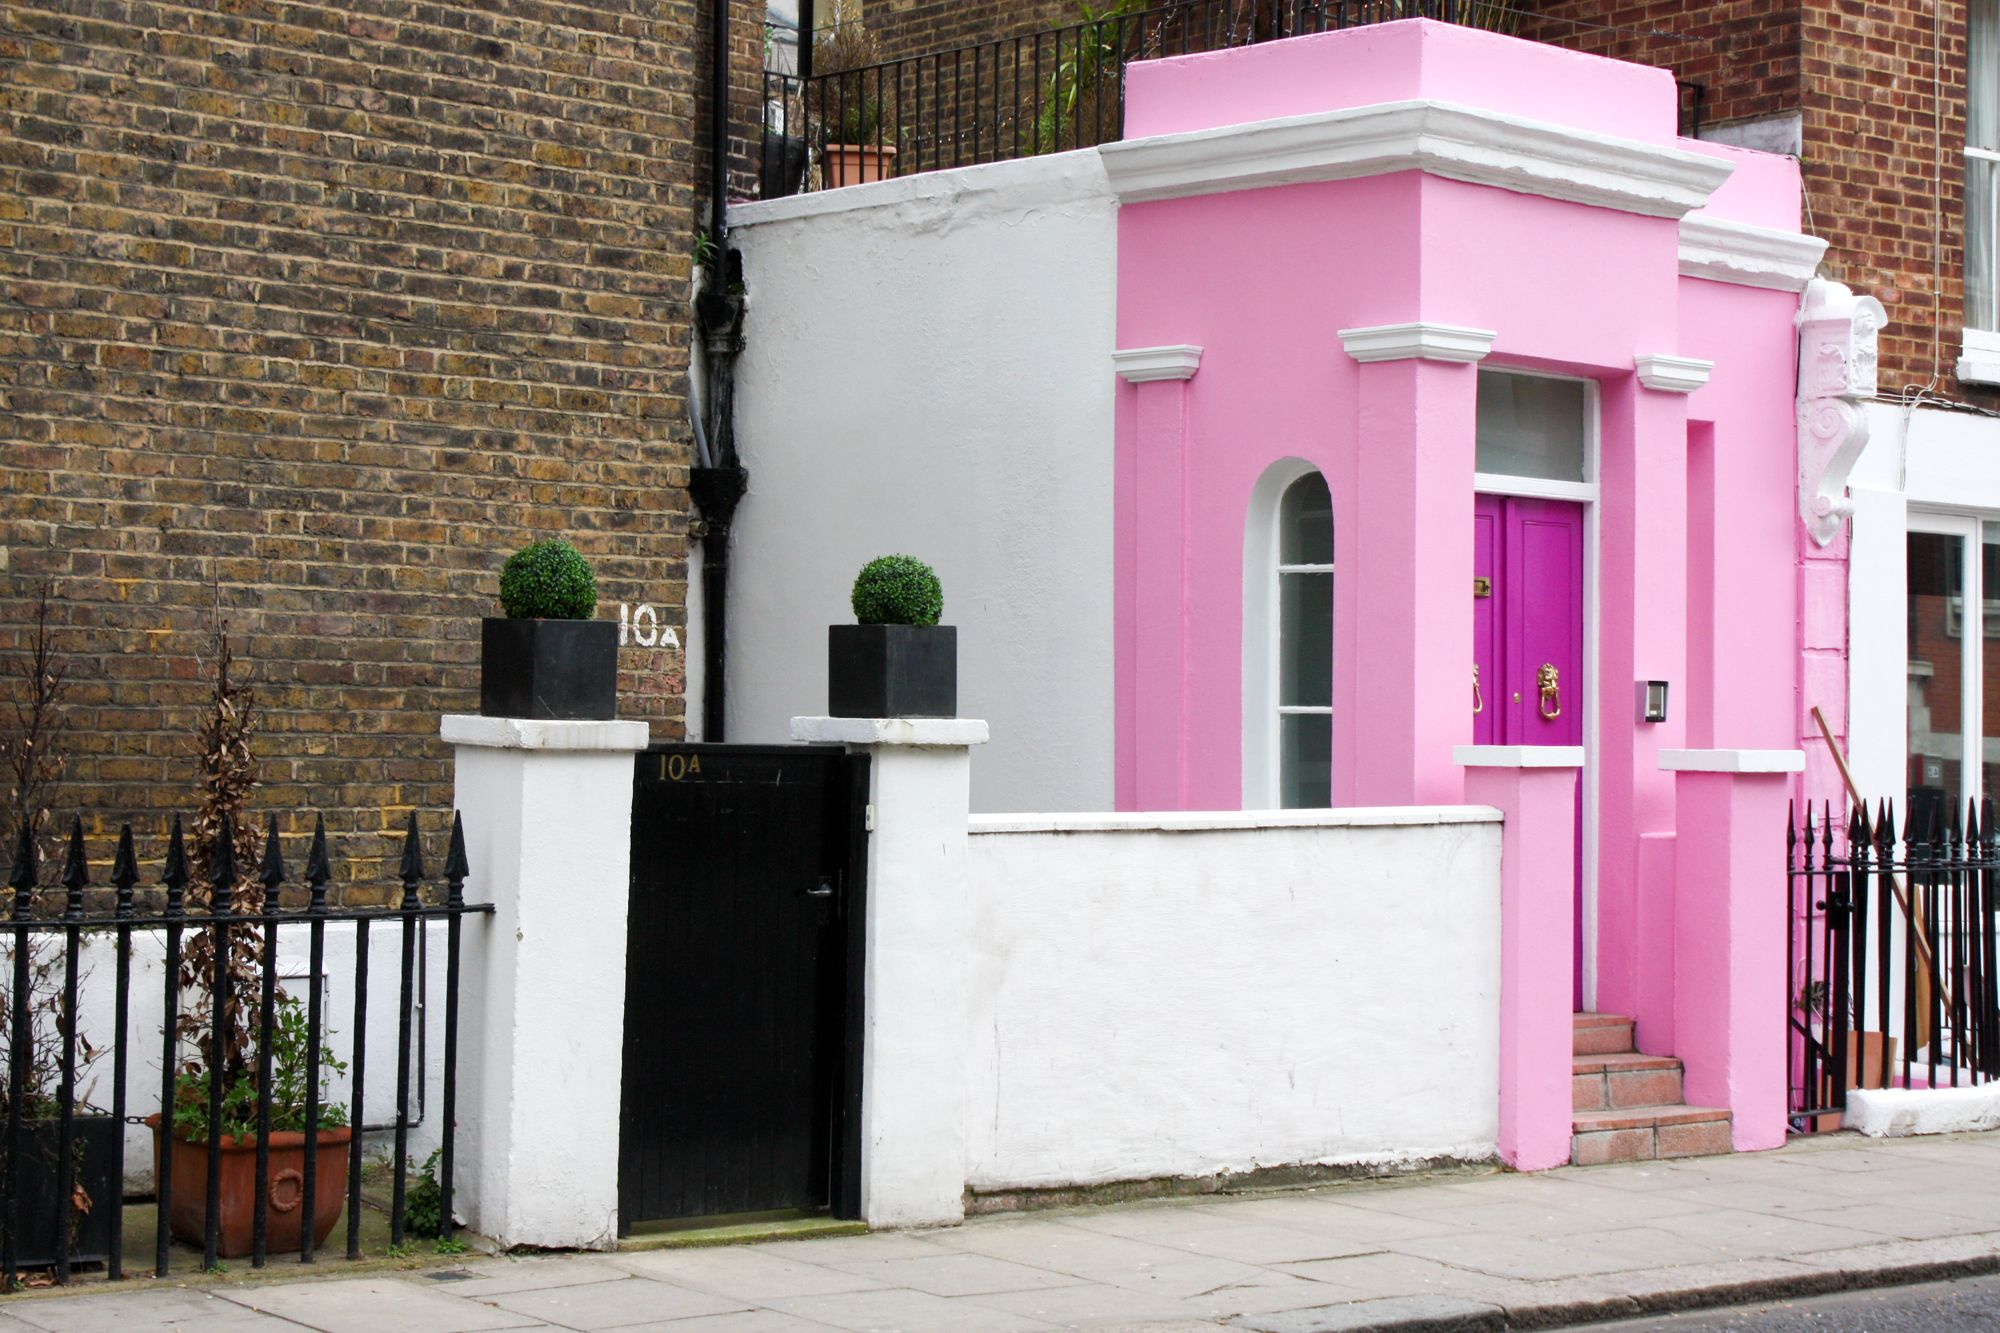 Hotels B Amp Bs Amp Self Catering In Notting Hill London Cool Places To Stay In The Uk